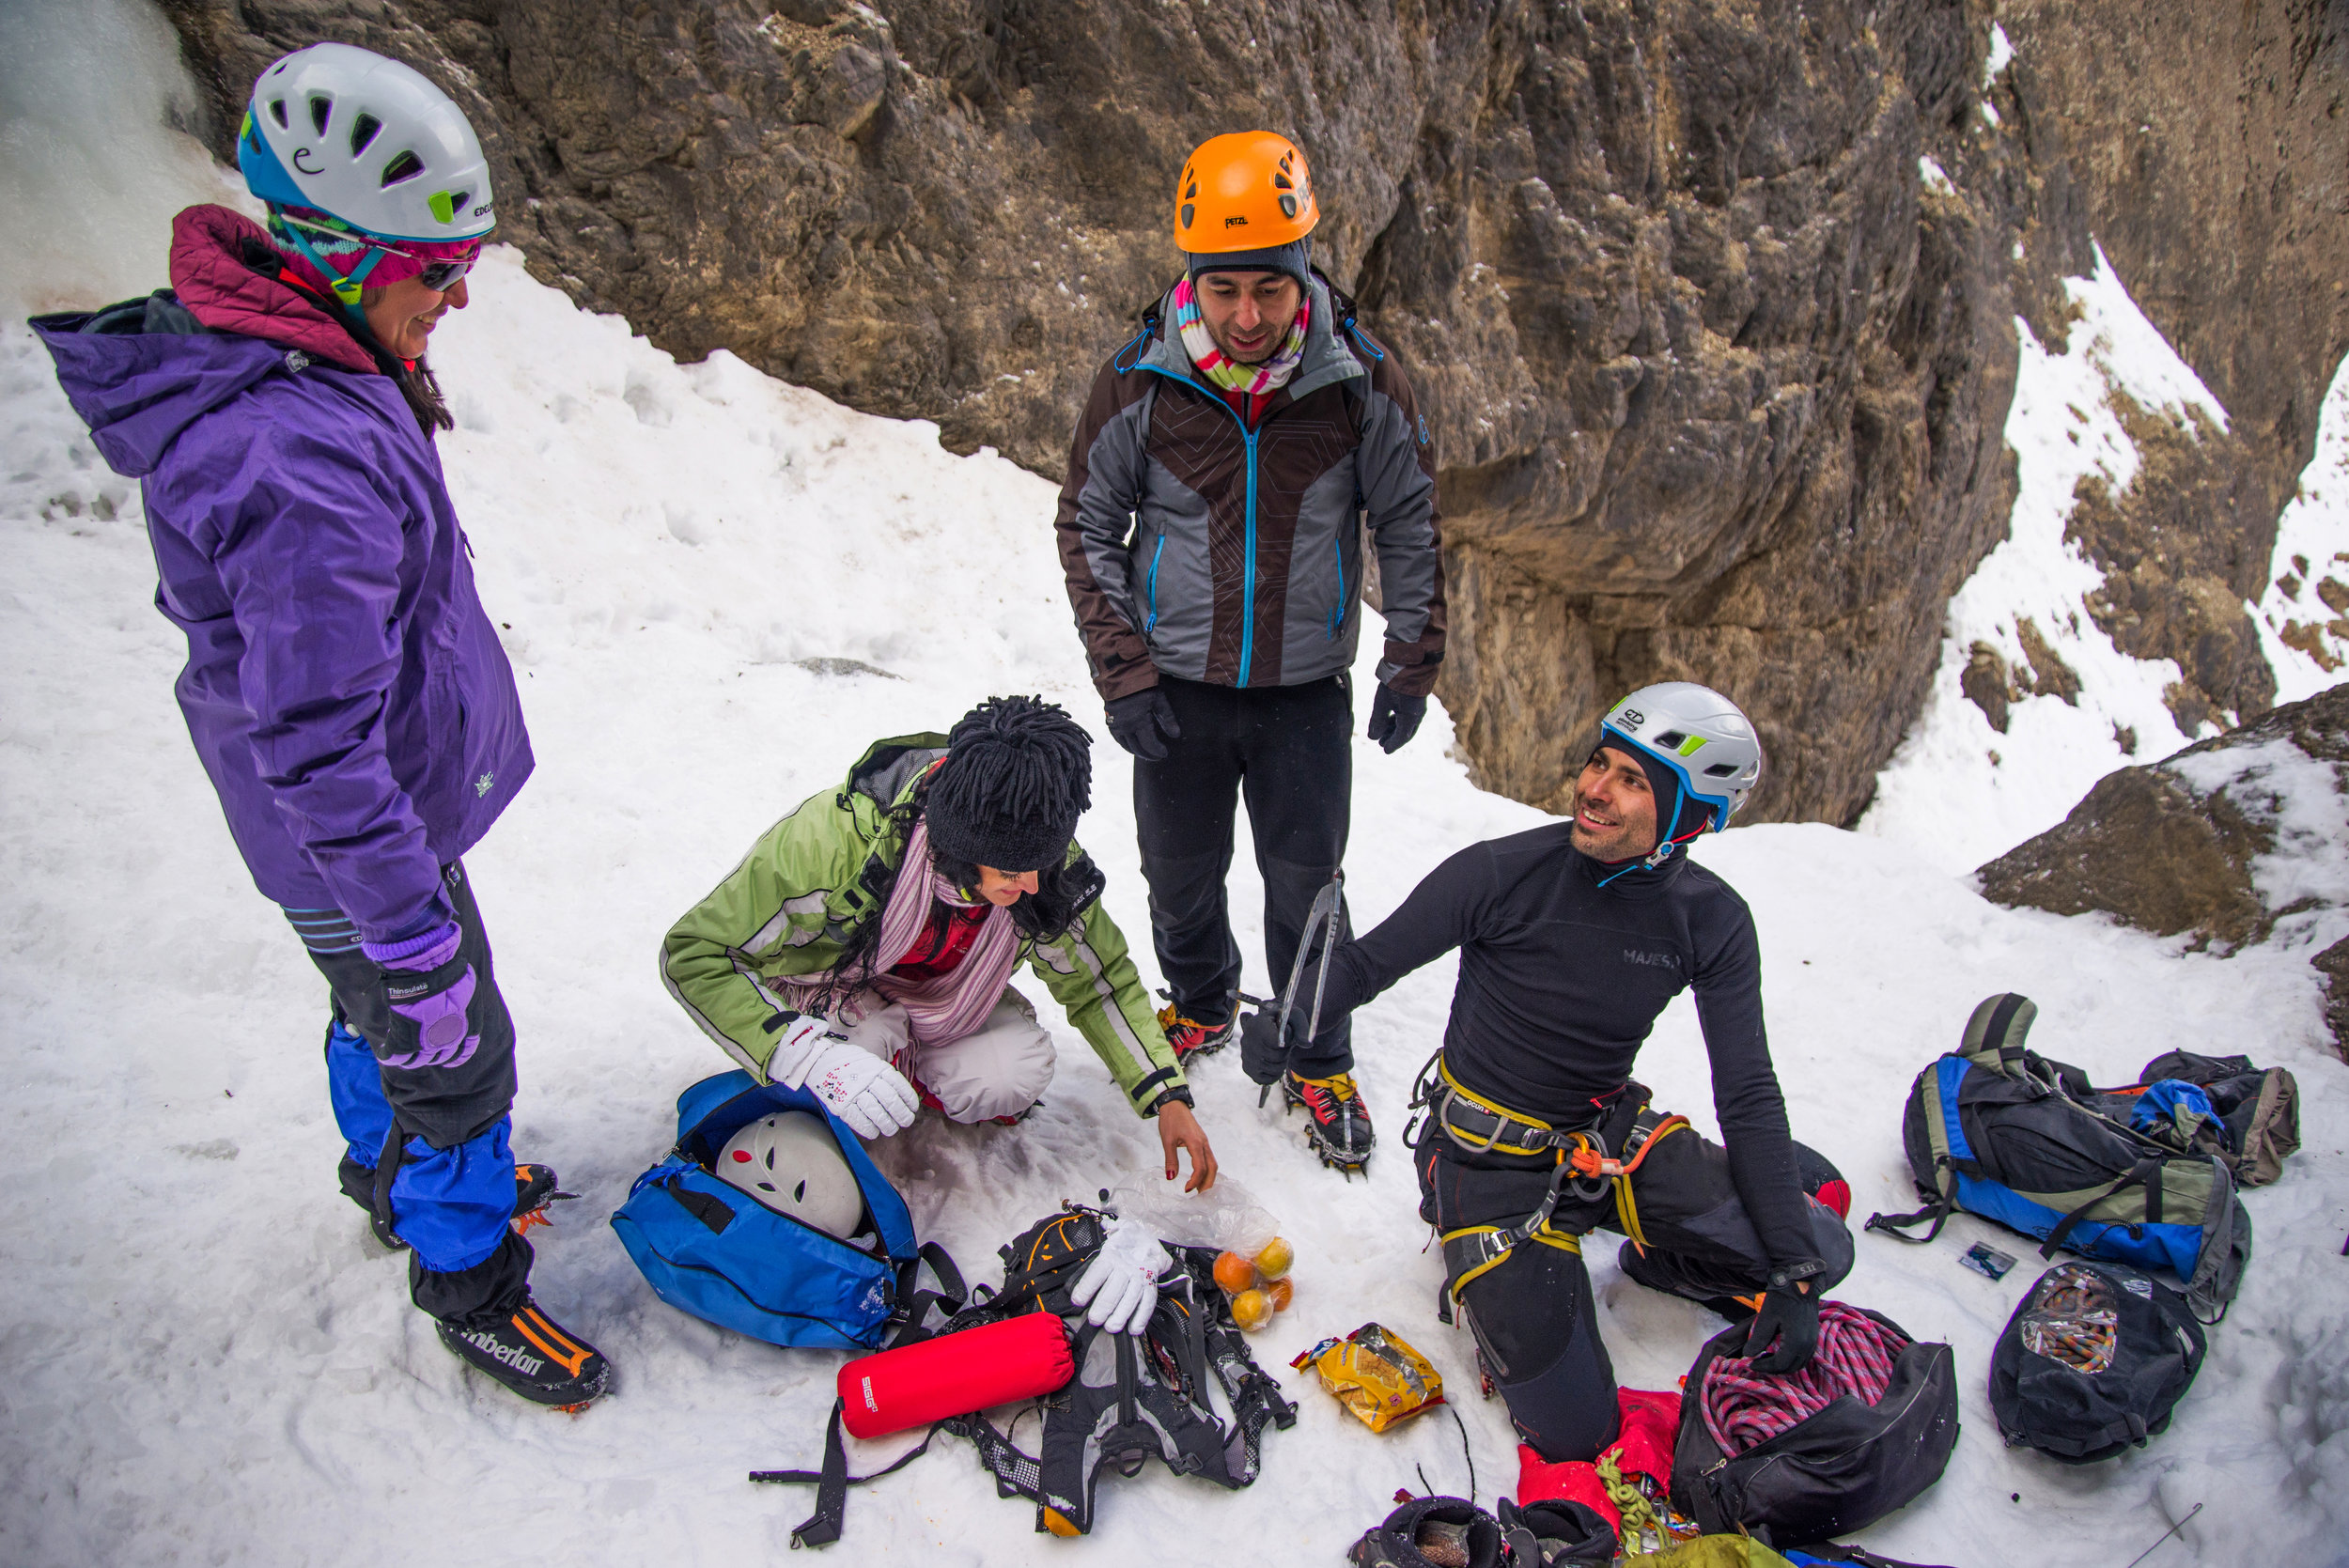 Ice climbing creates a relaxed  atmosphere for socializing among Shiva and her friends after they are done with the activity.